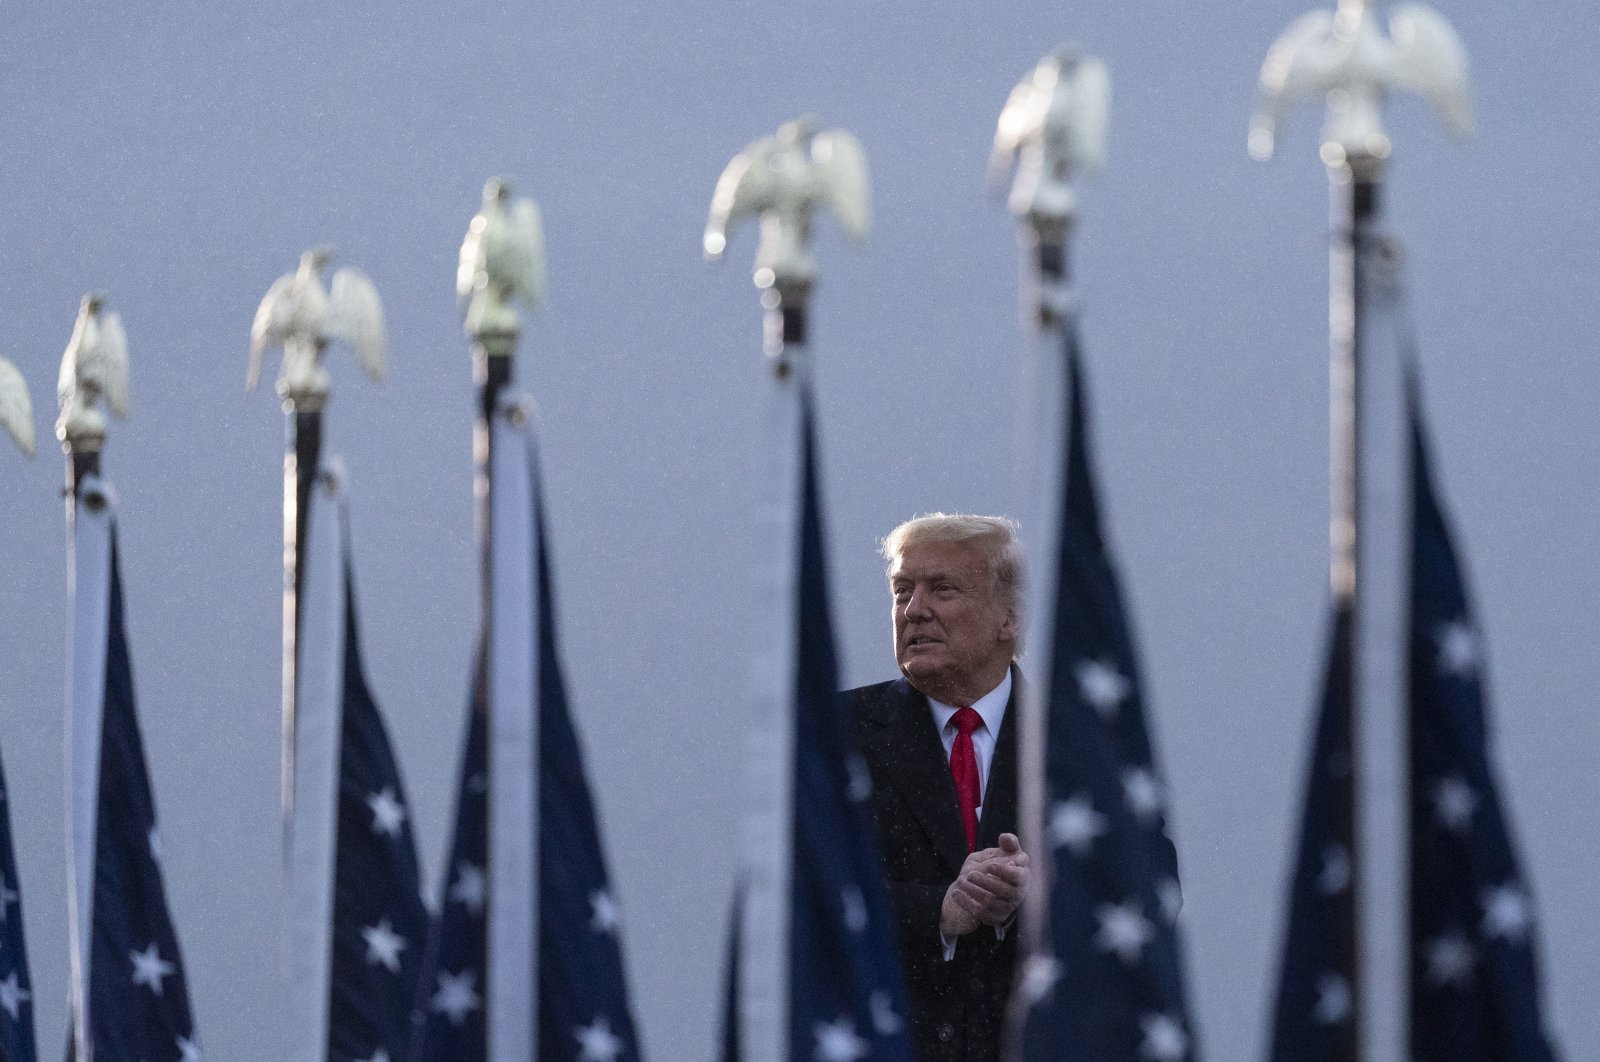 U.S. President Donald Trump applauds as he departs after speaking at a campaign rally at Altoona-Blair County Airport, in Martinsburg, Pennsylvania, Oct. 26, 2020. (AP Photo)